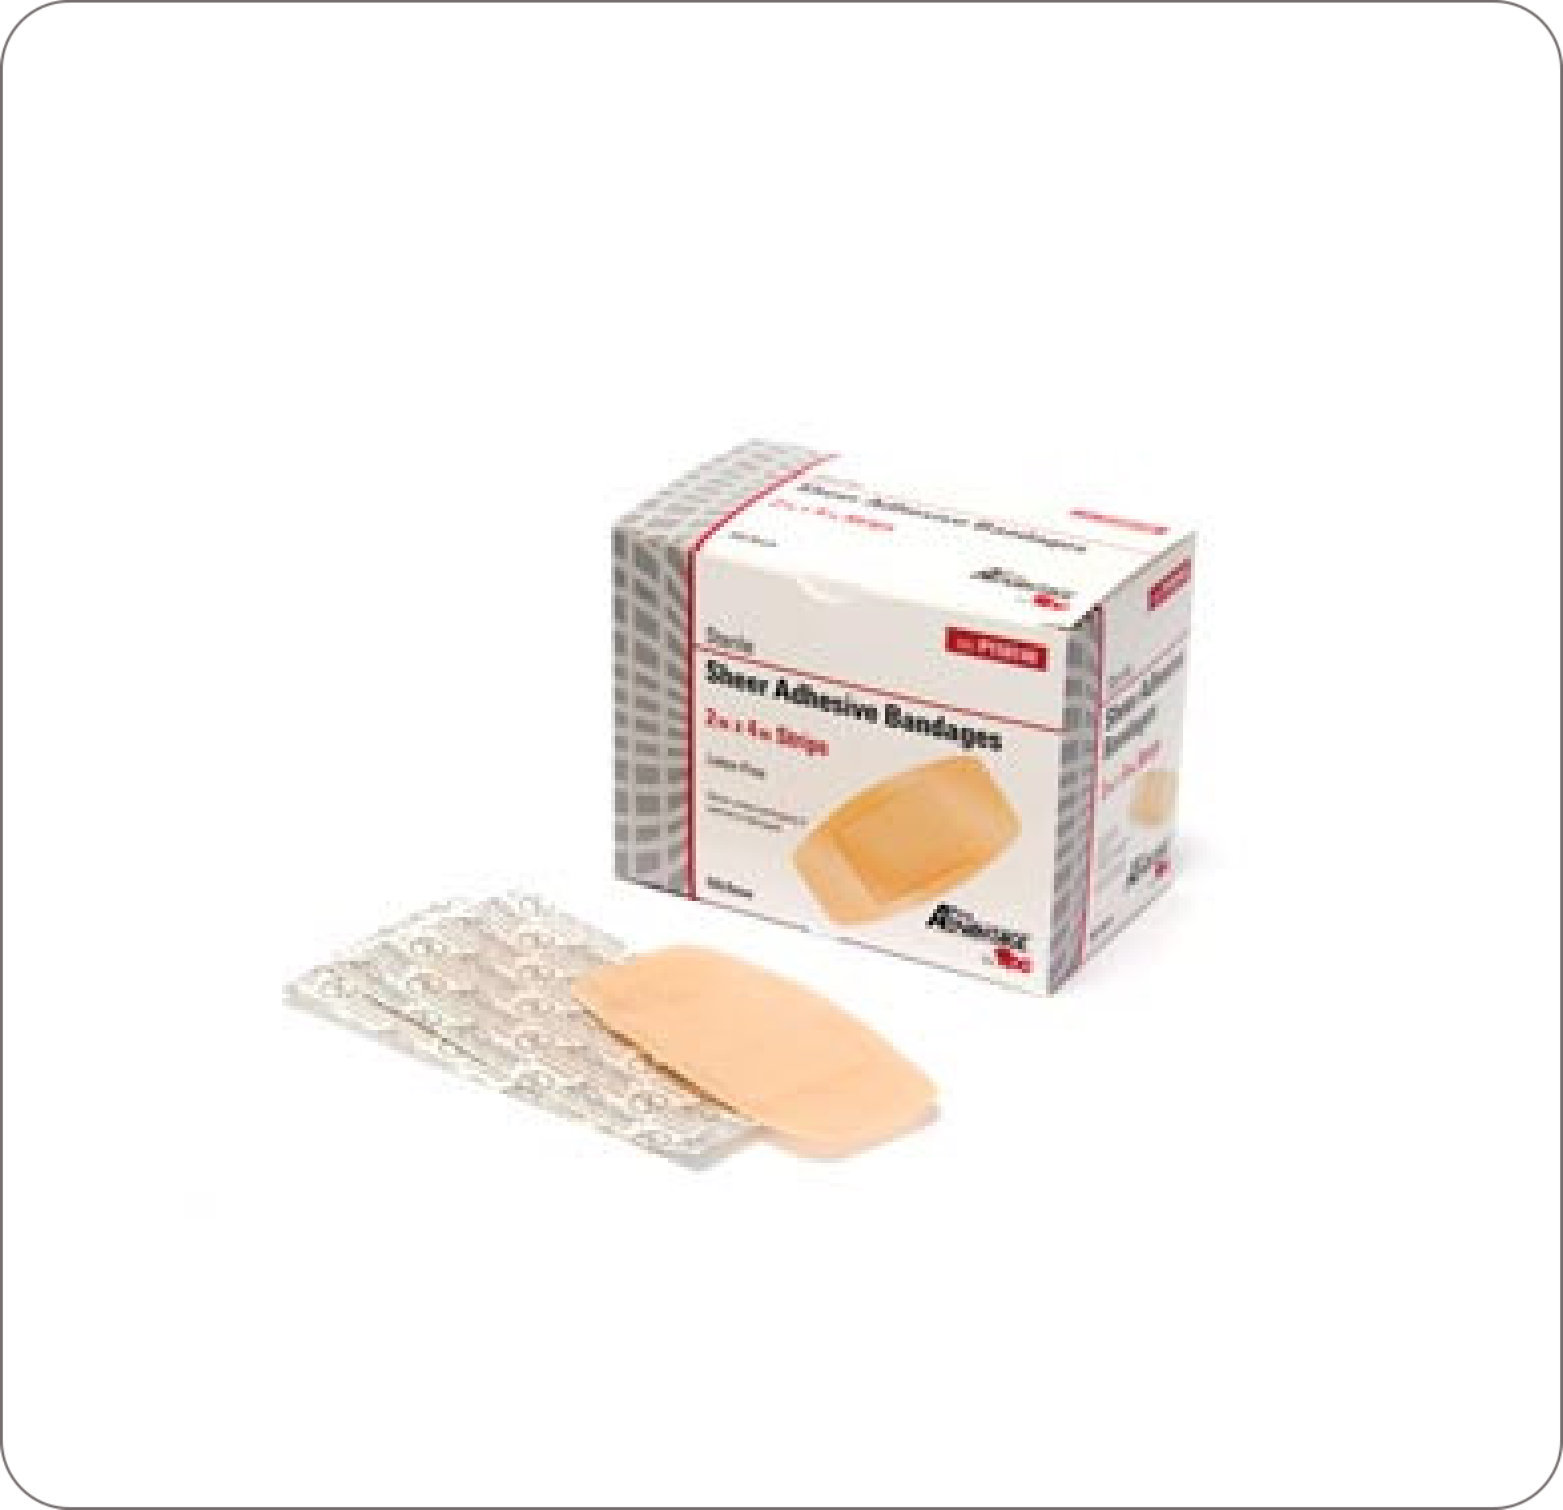 Bandage Sheer Adhesive Strip P150140